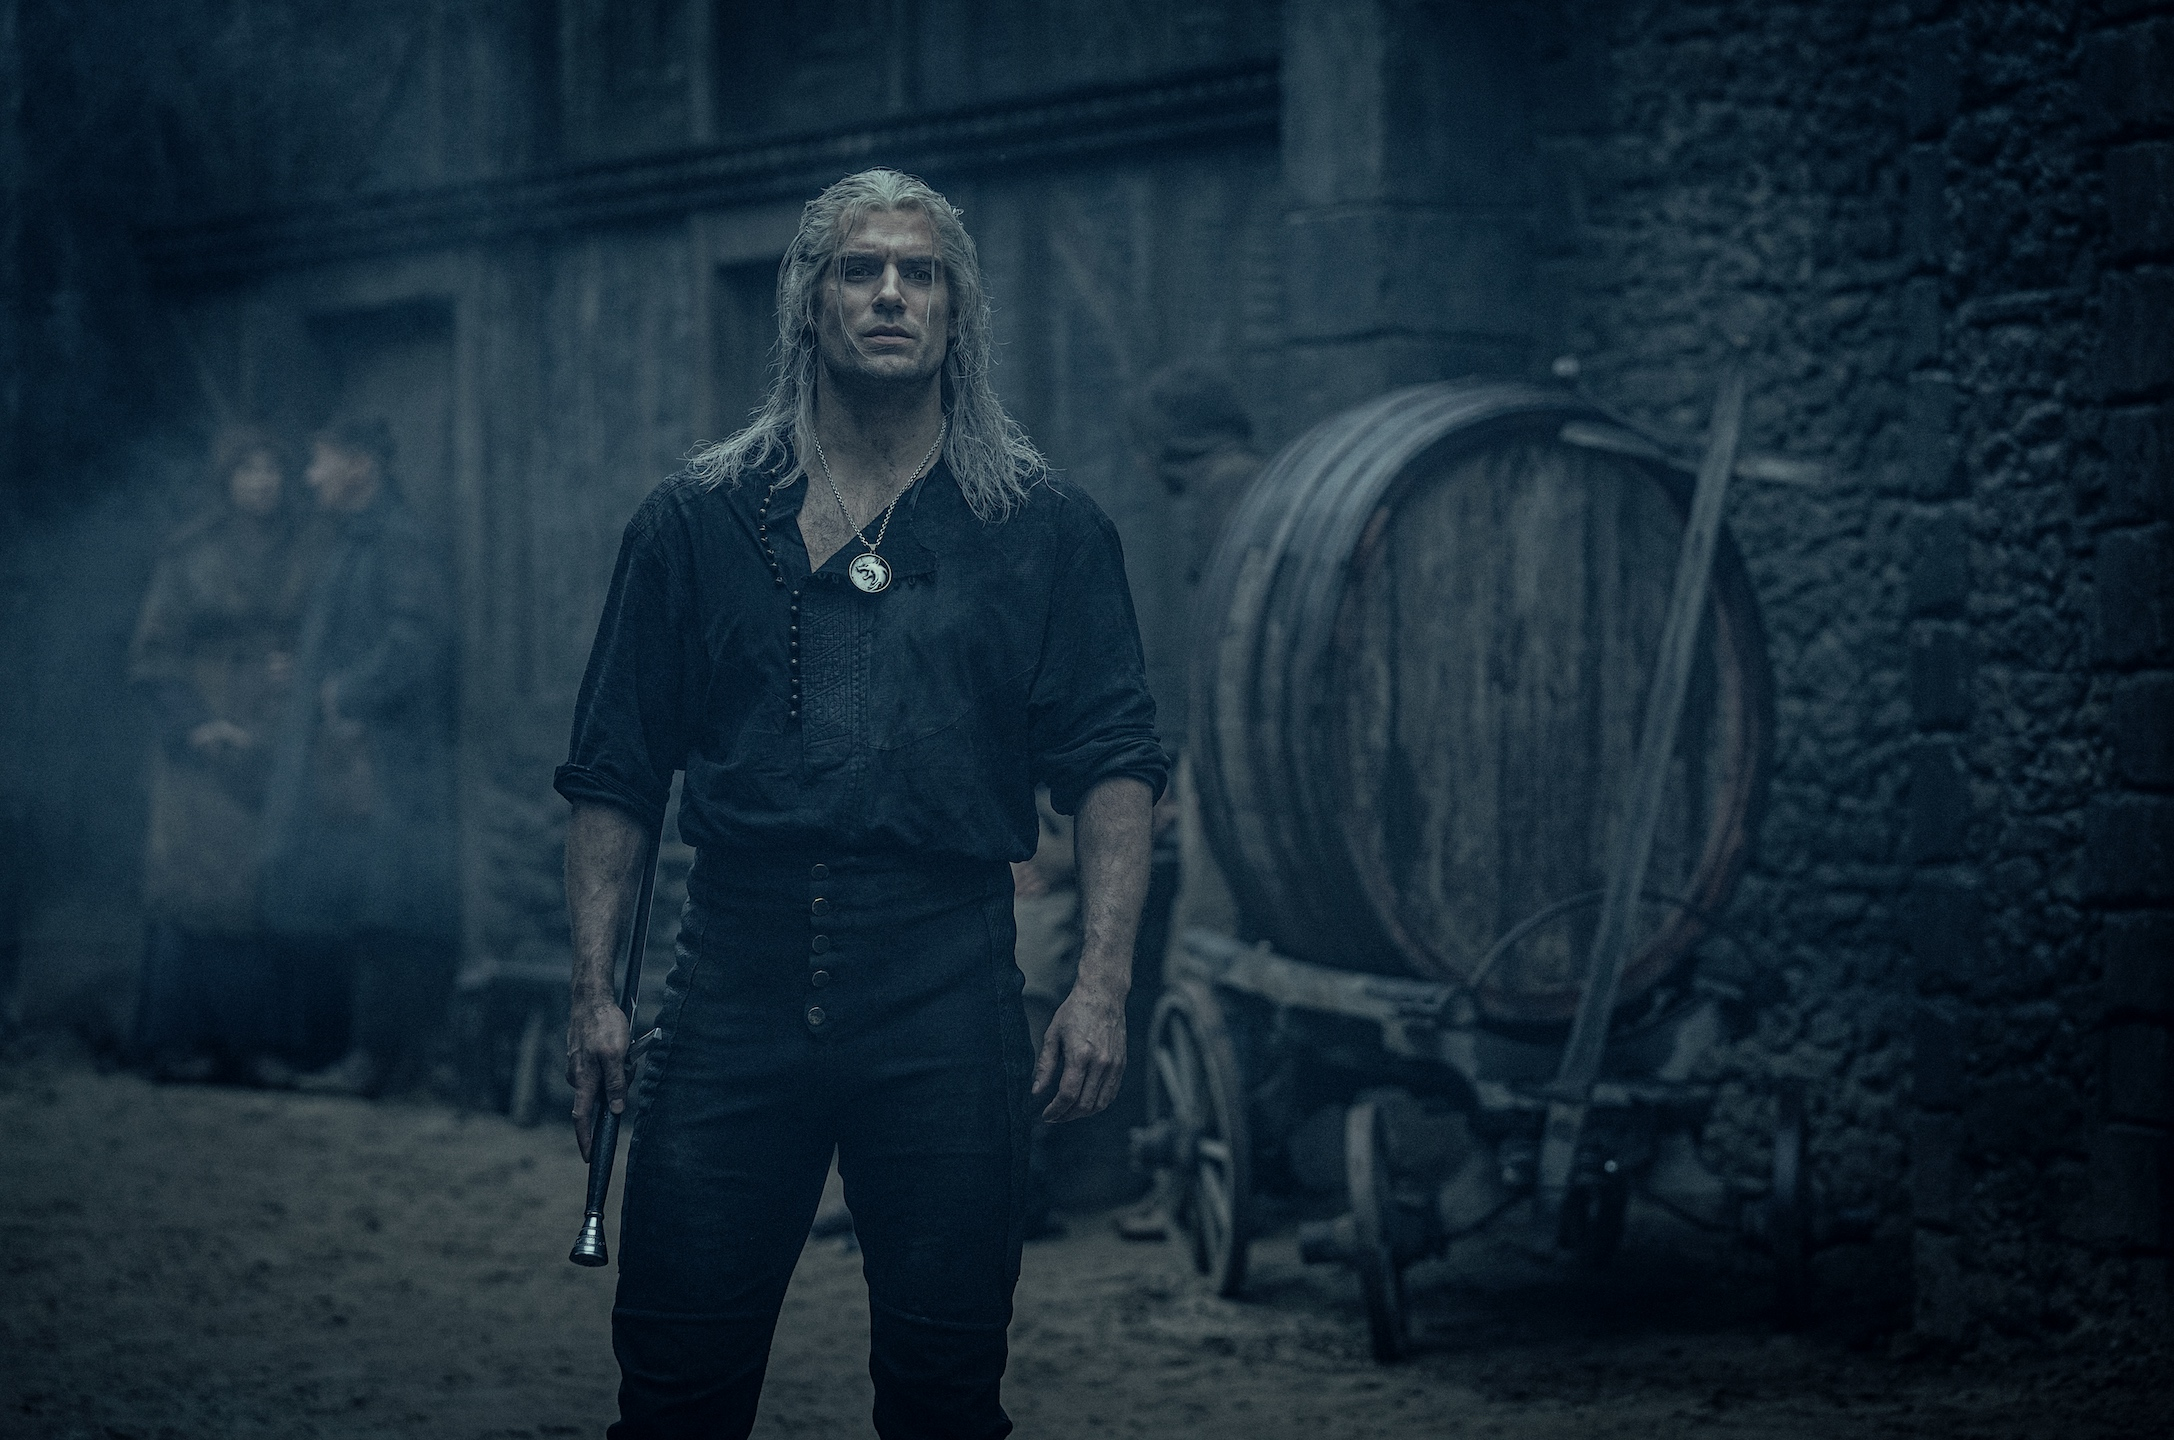 Variety Reveals 'The Witcher' has Been Renewed for Season 2 at Netflix Ahead of Series Premiere